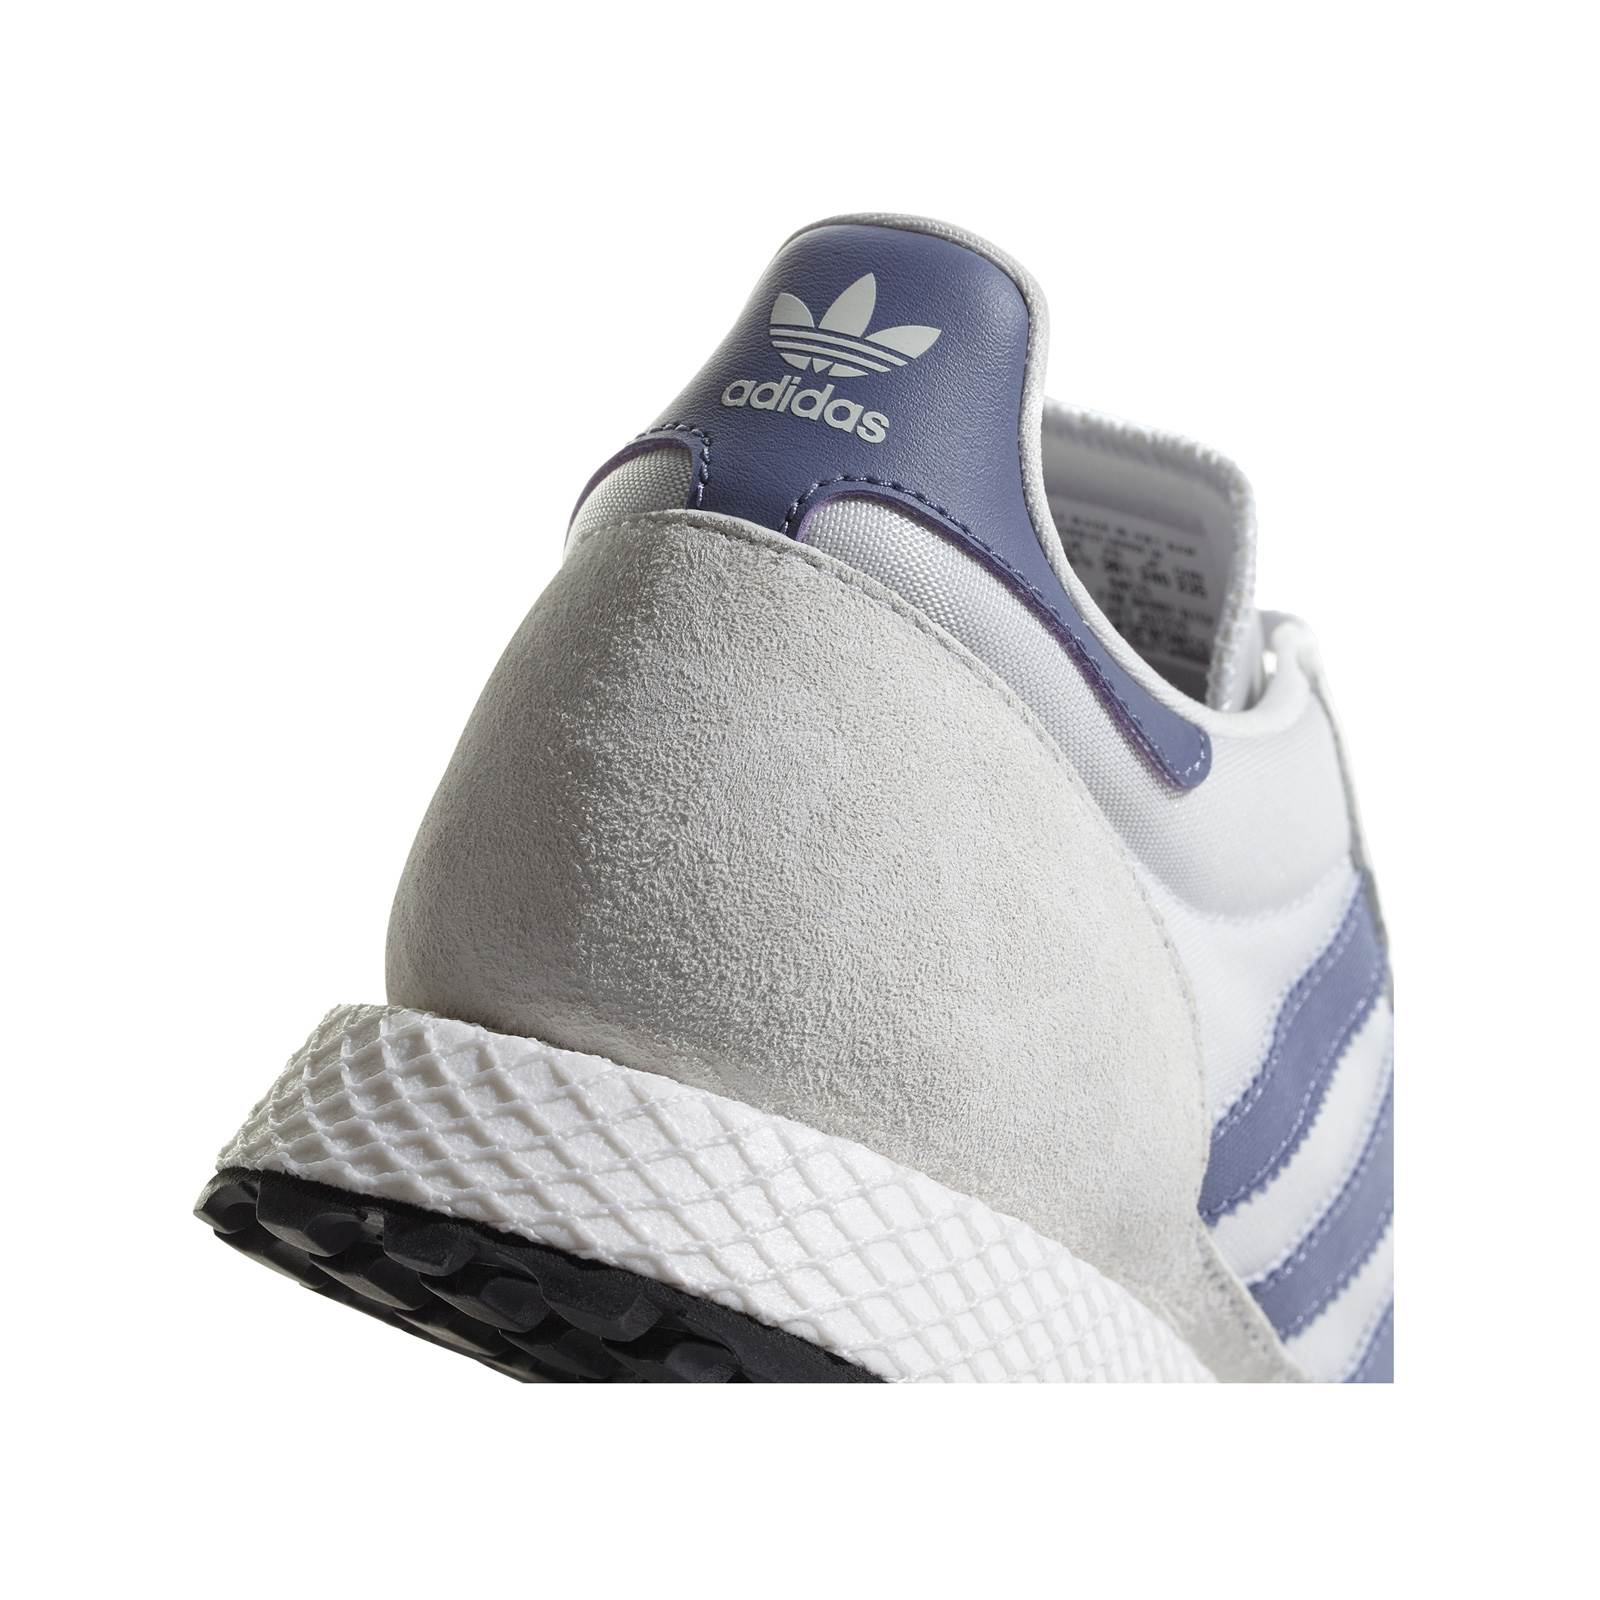 factory price 18a90 0ed0b ADIDAS ORIGINALS Forest Grove W - Baskets en cuir bi-matière - gris chine